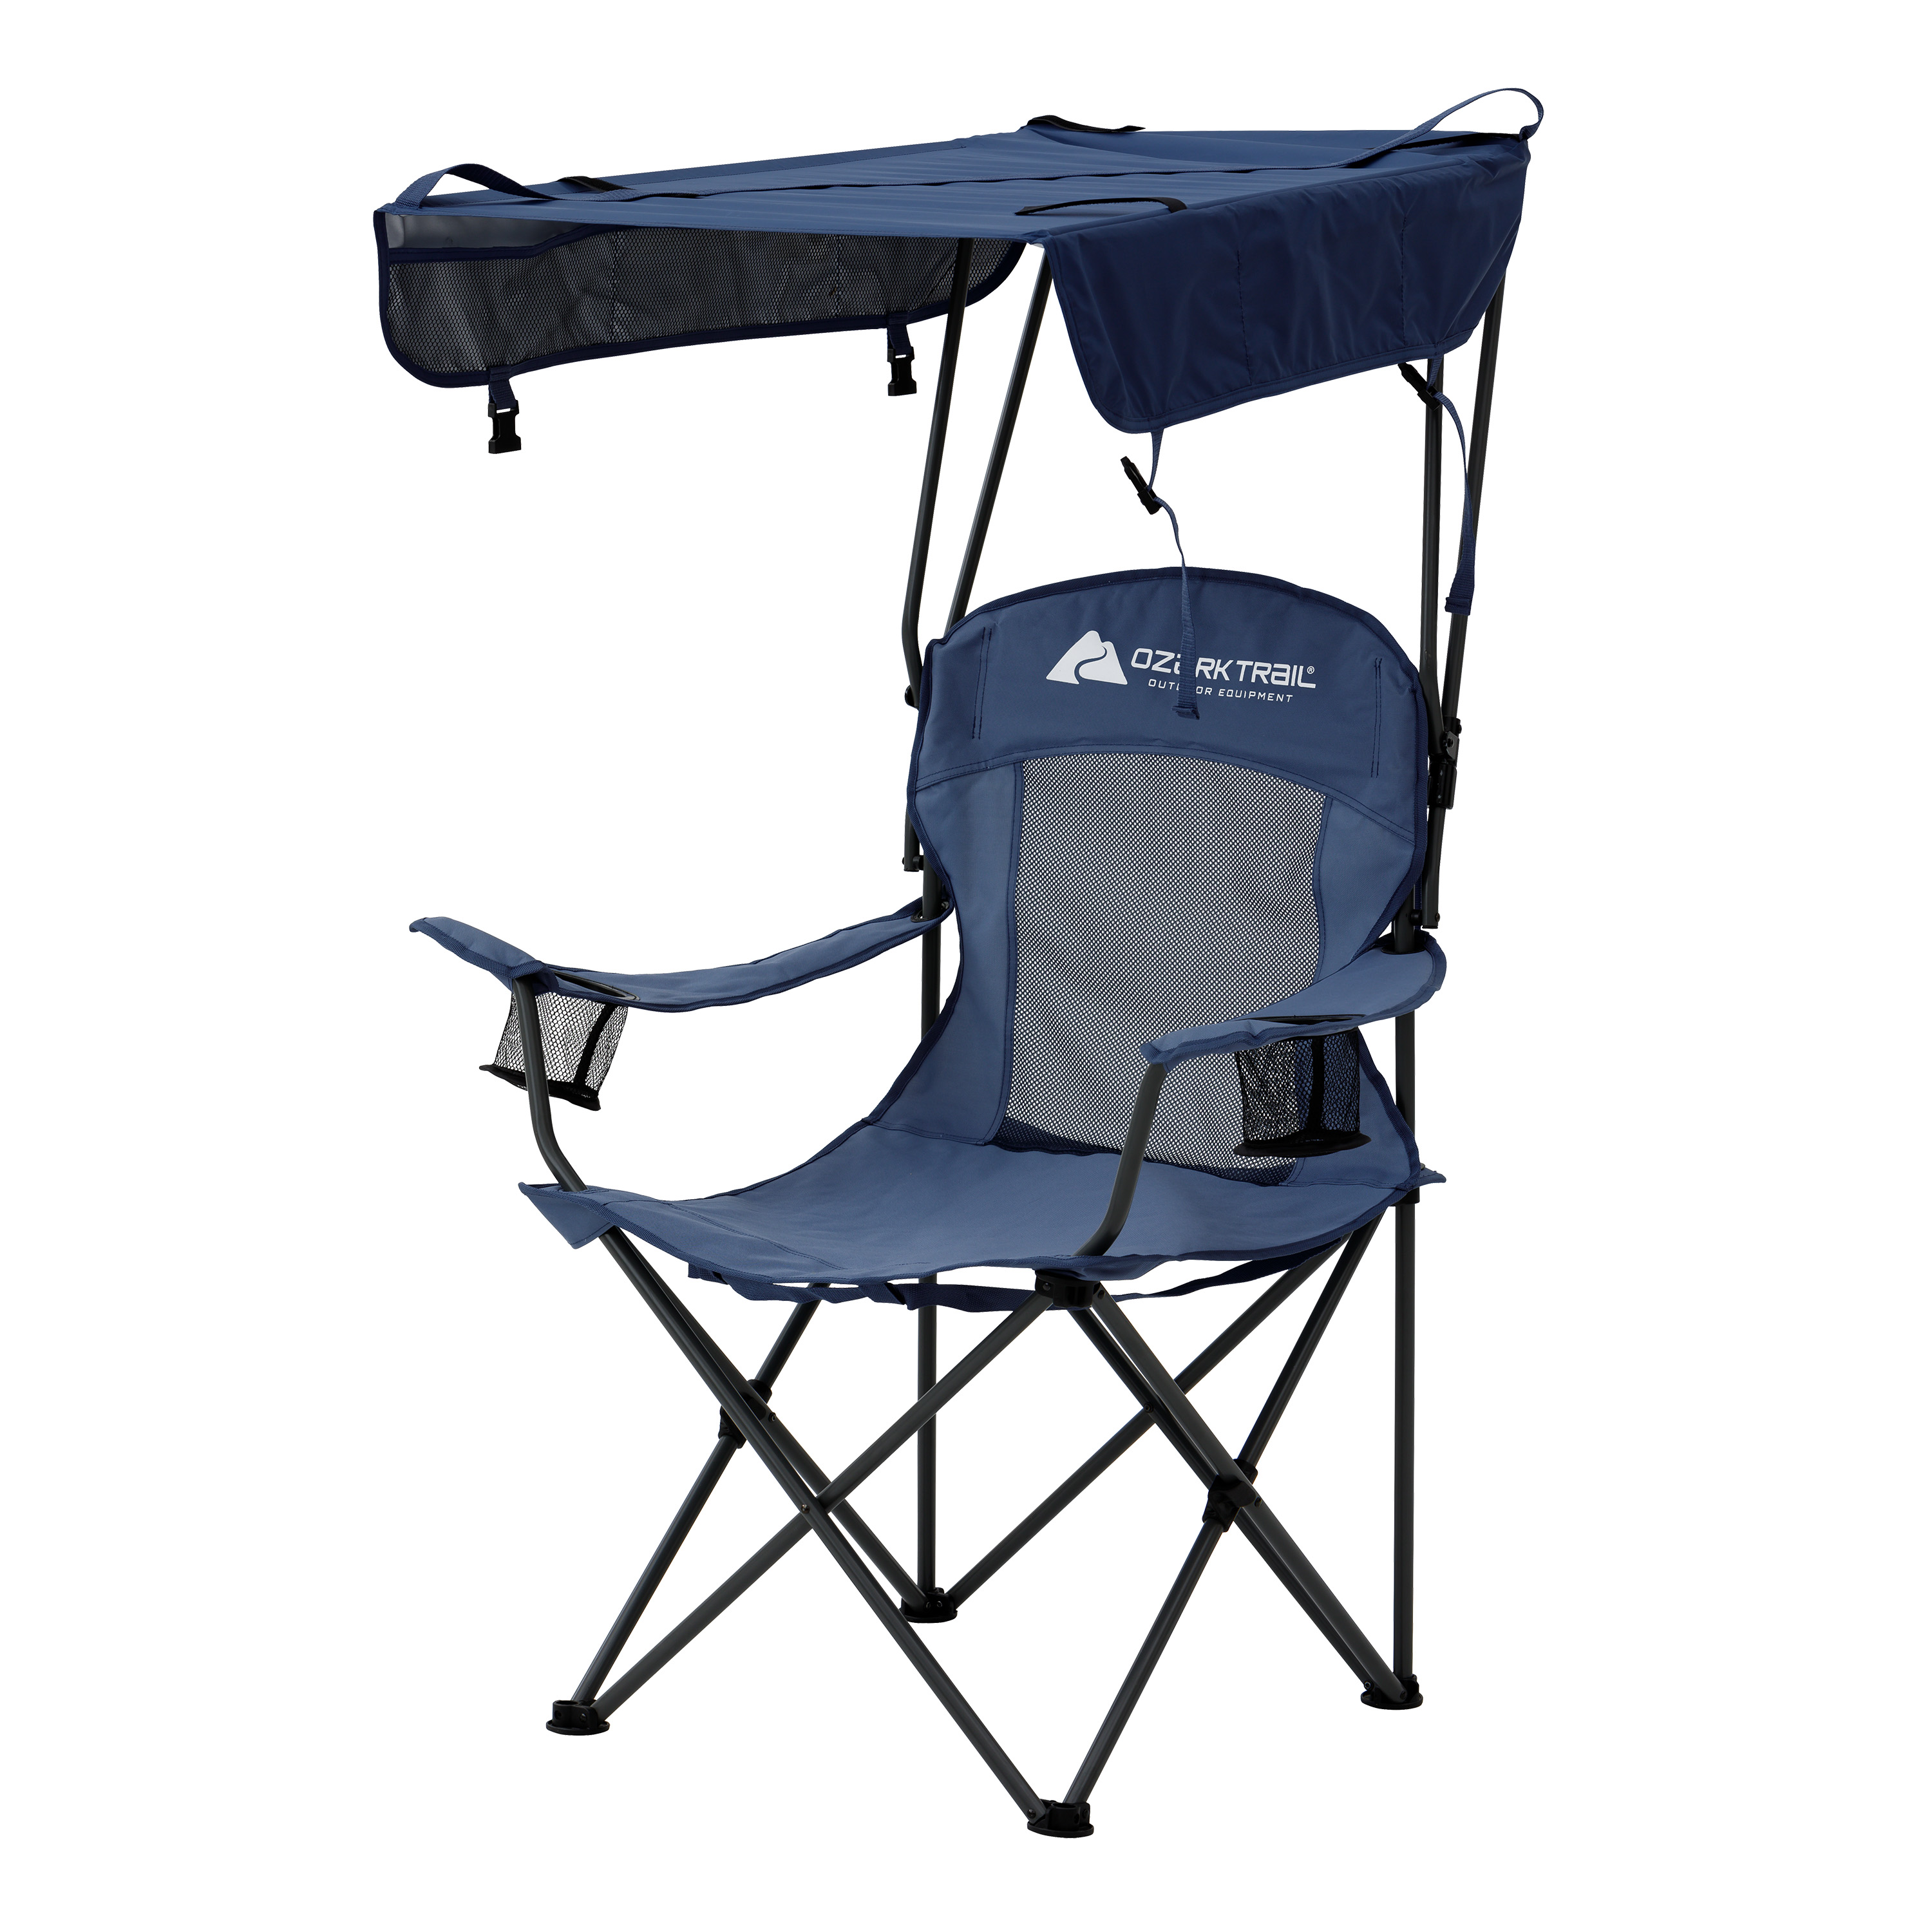 Ozark Trail Sand Island Shaded Canopy Camping Chair with Cup Holders